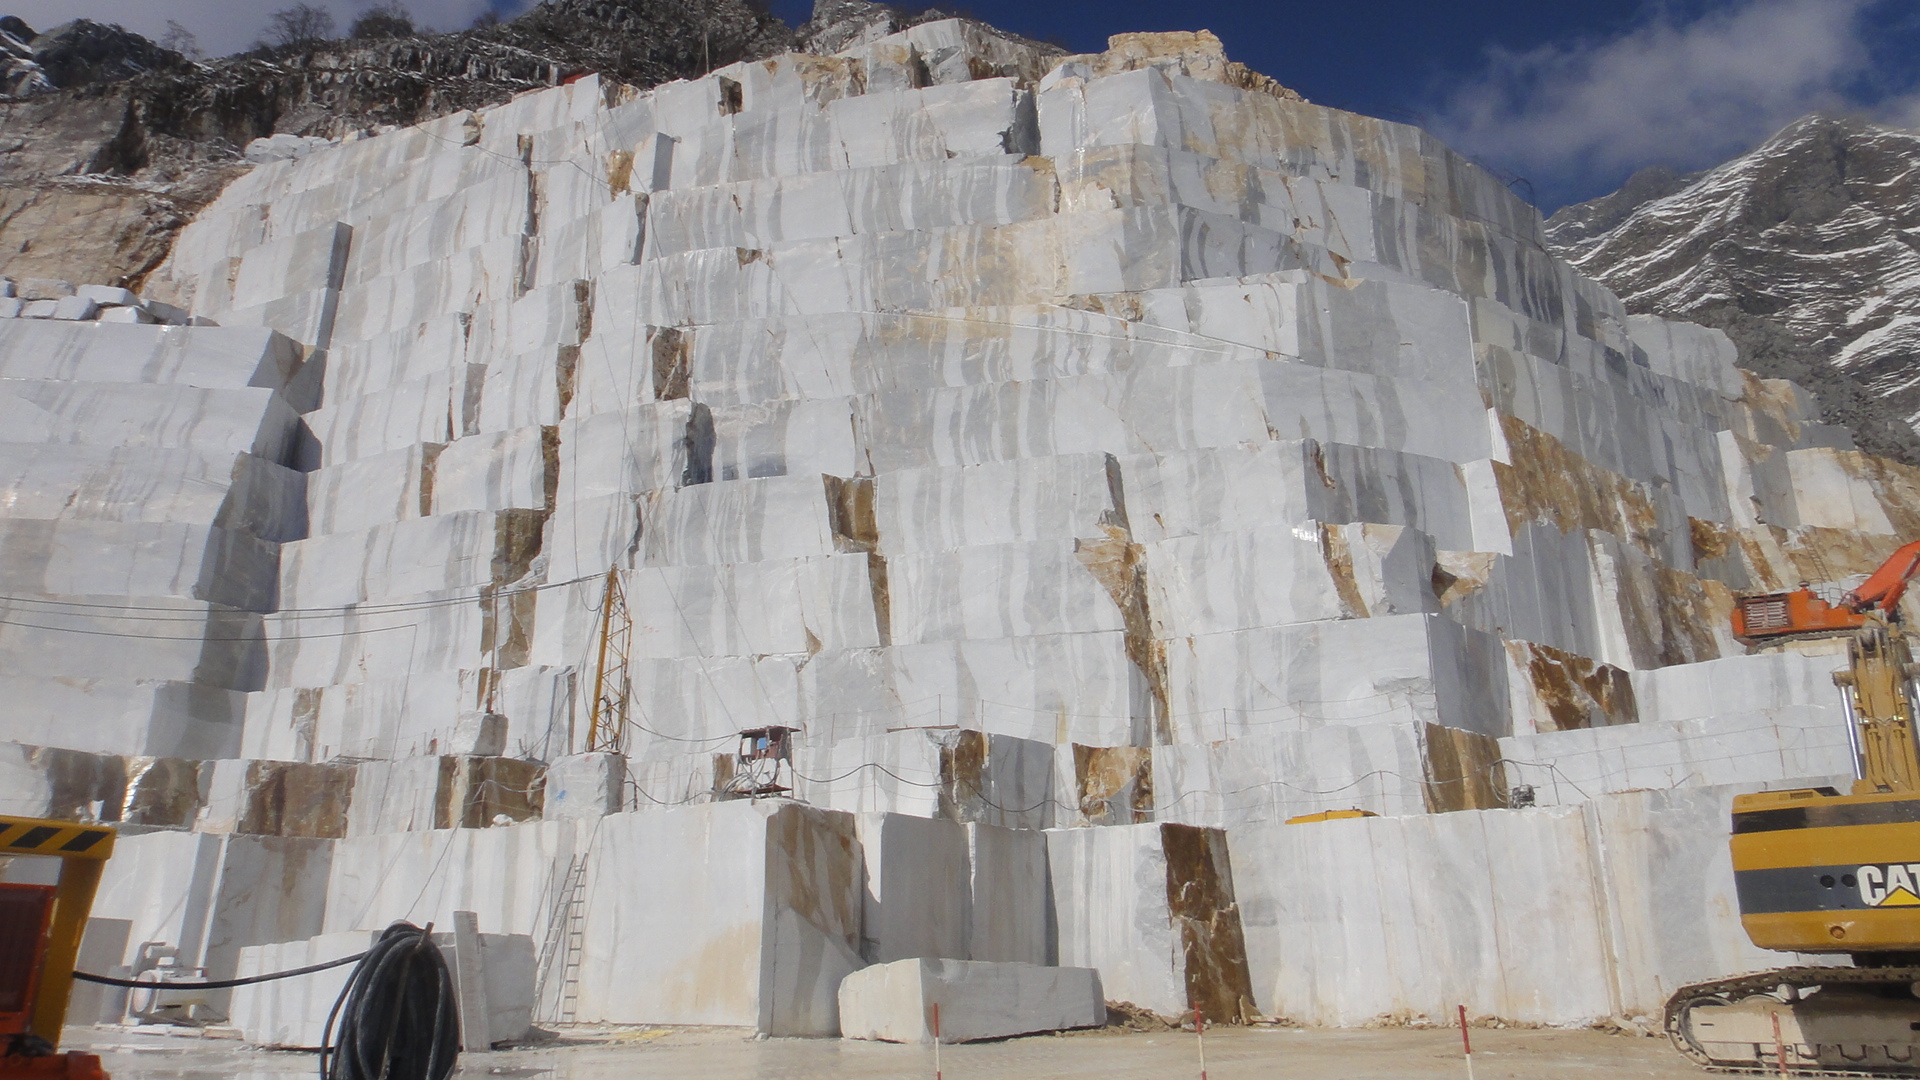 Carrara Marble Quarry – The Educated Traveller